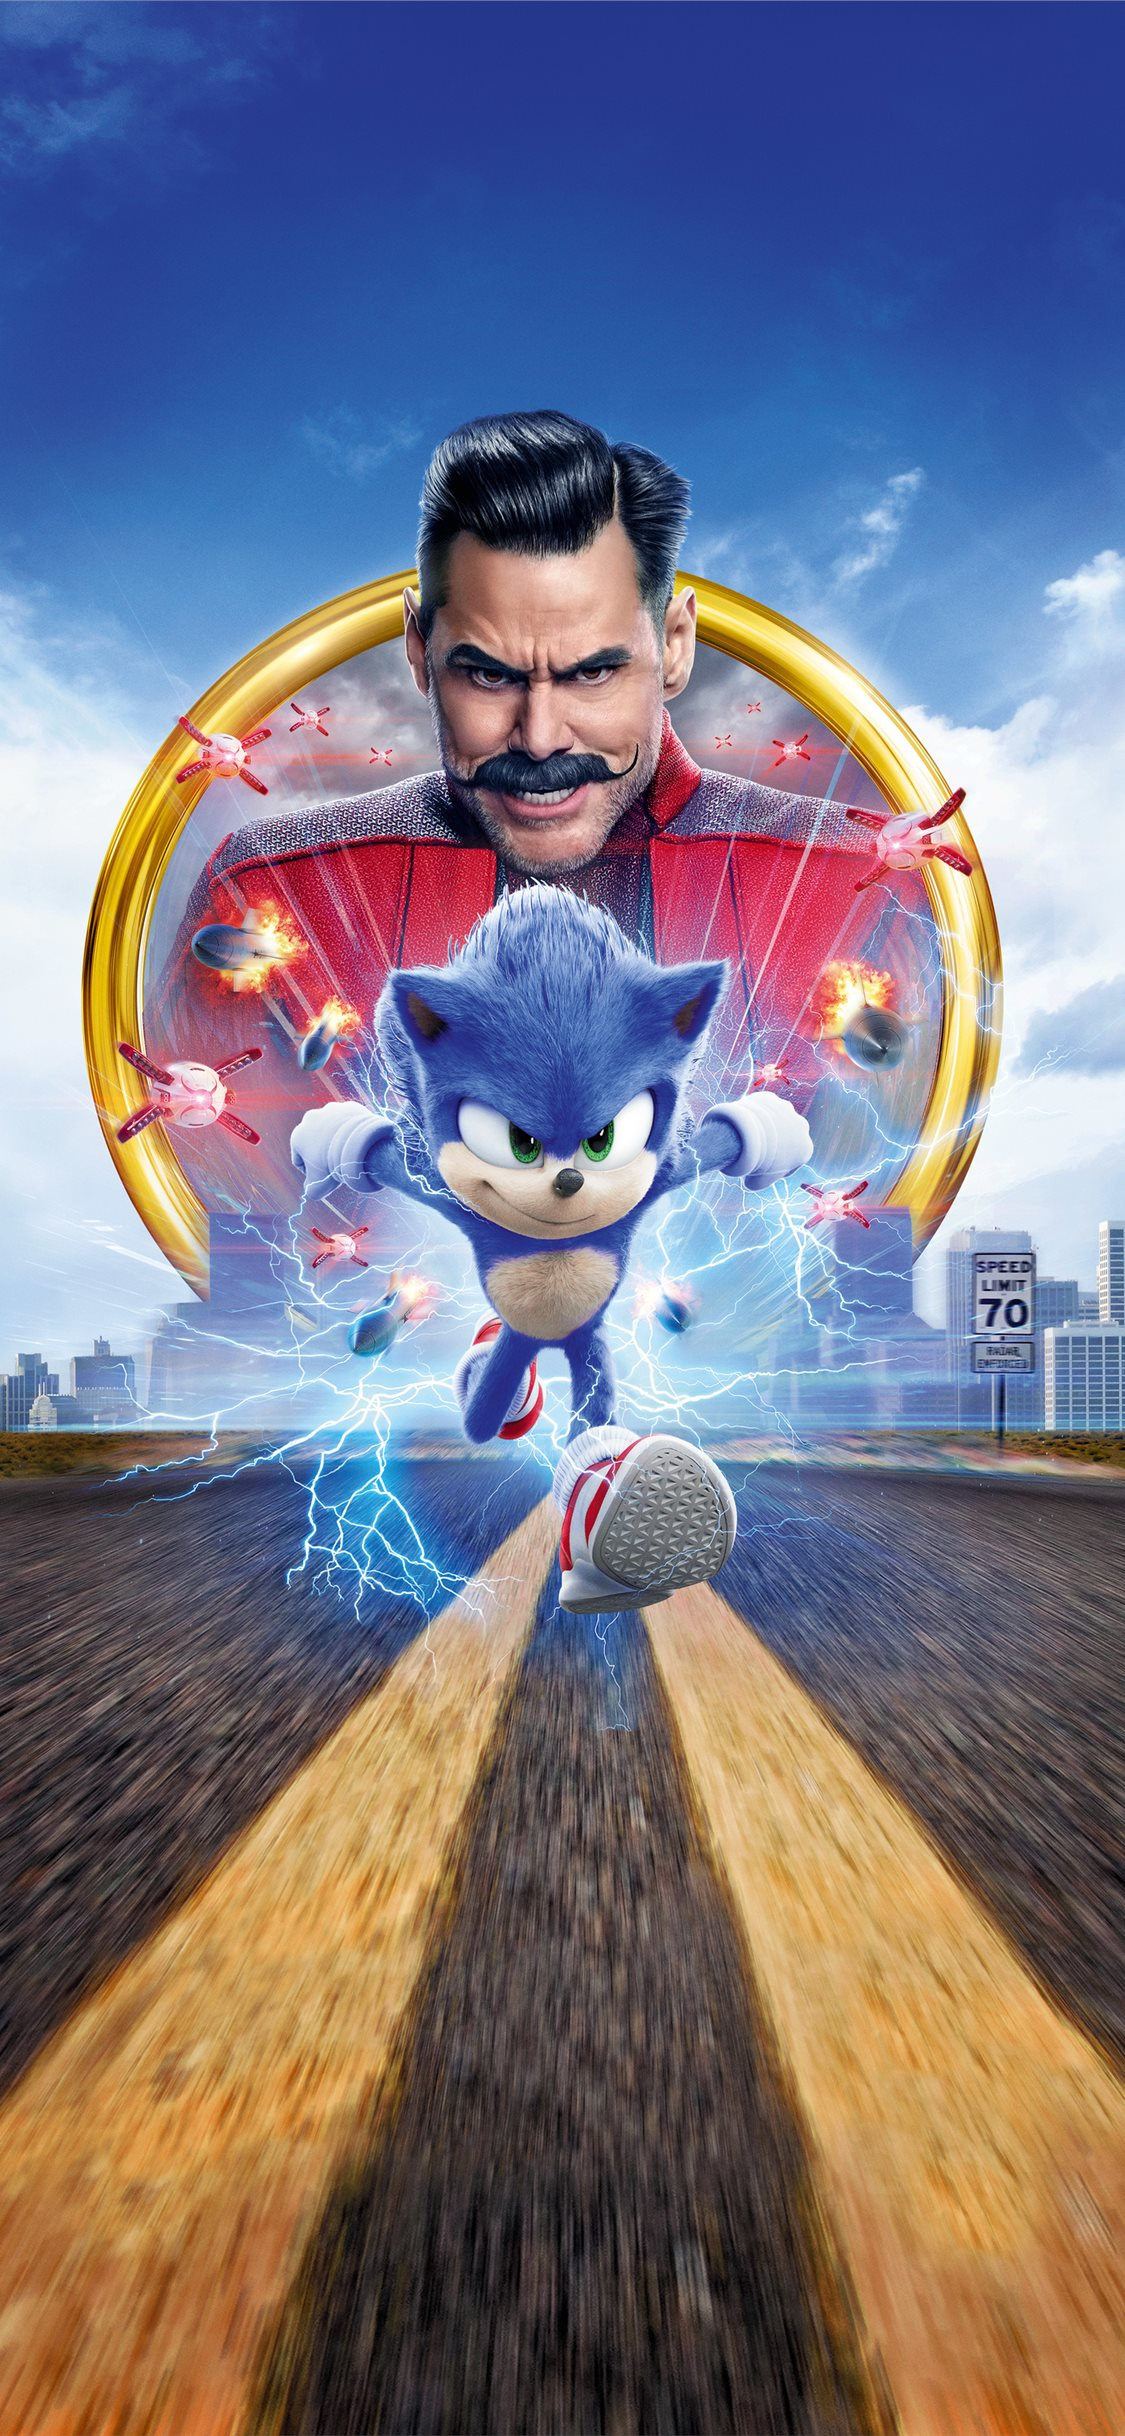 Sonic The Hedgehog 2020 15k Iphone X Wallpapers Free Download